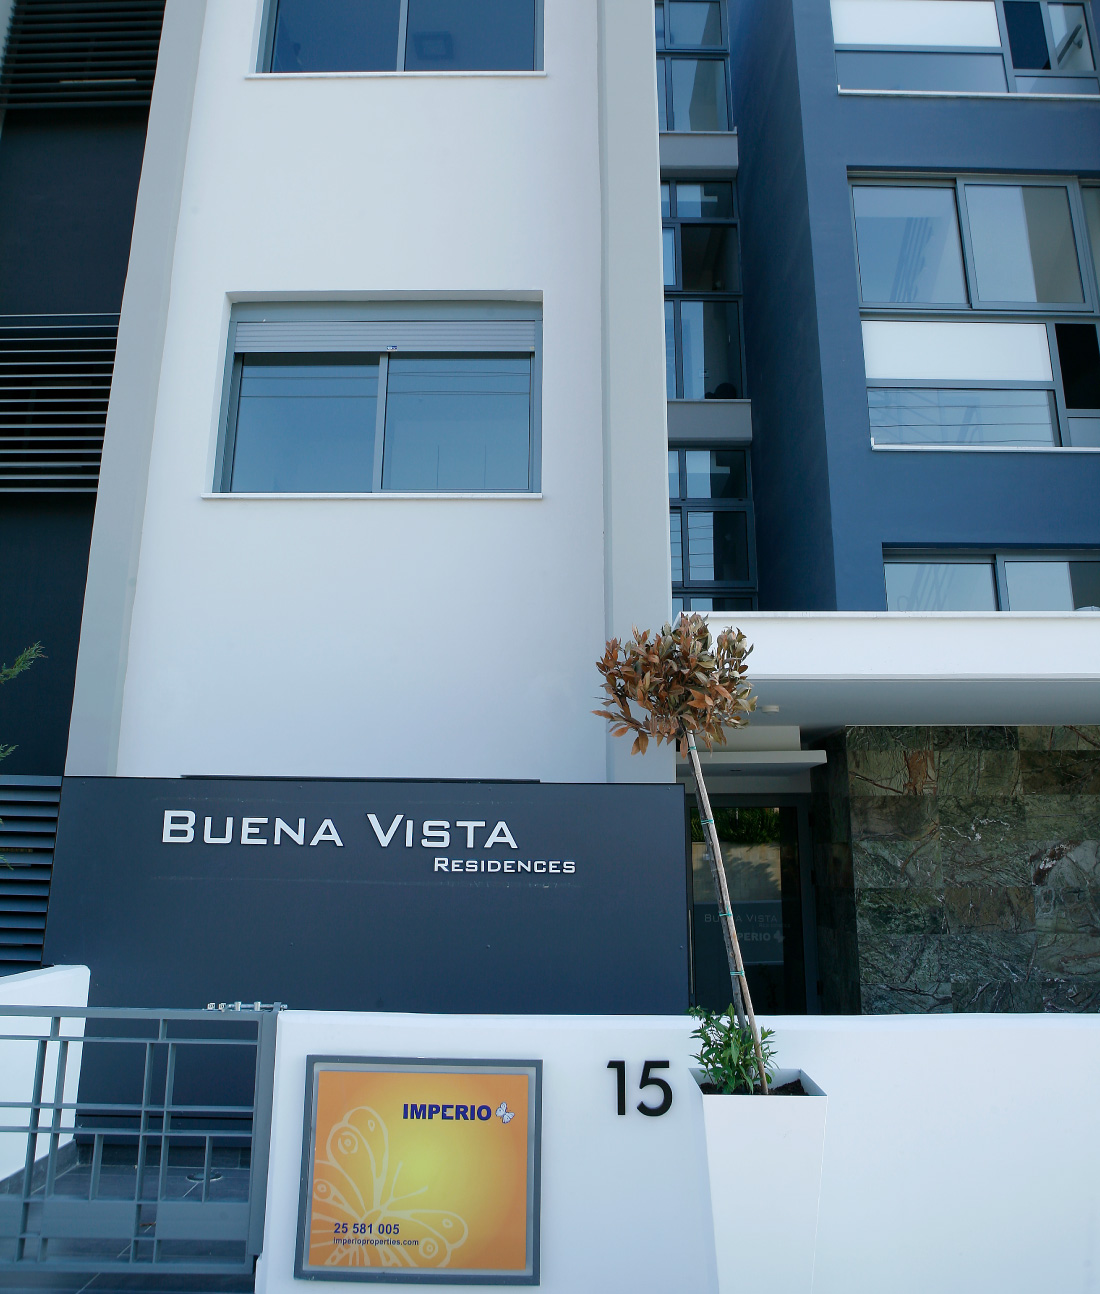 buenavista, buenavistaresidences, imperioproperties, limassol, limassolliving, forsale, apartments, cyprus, cyprusproperties, imperioapartments